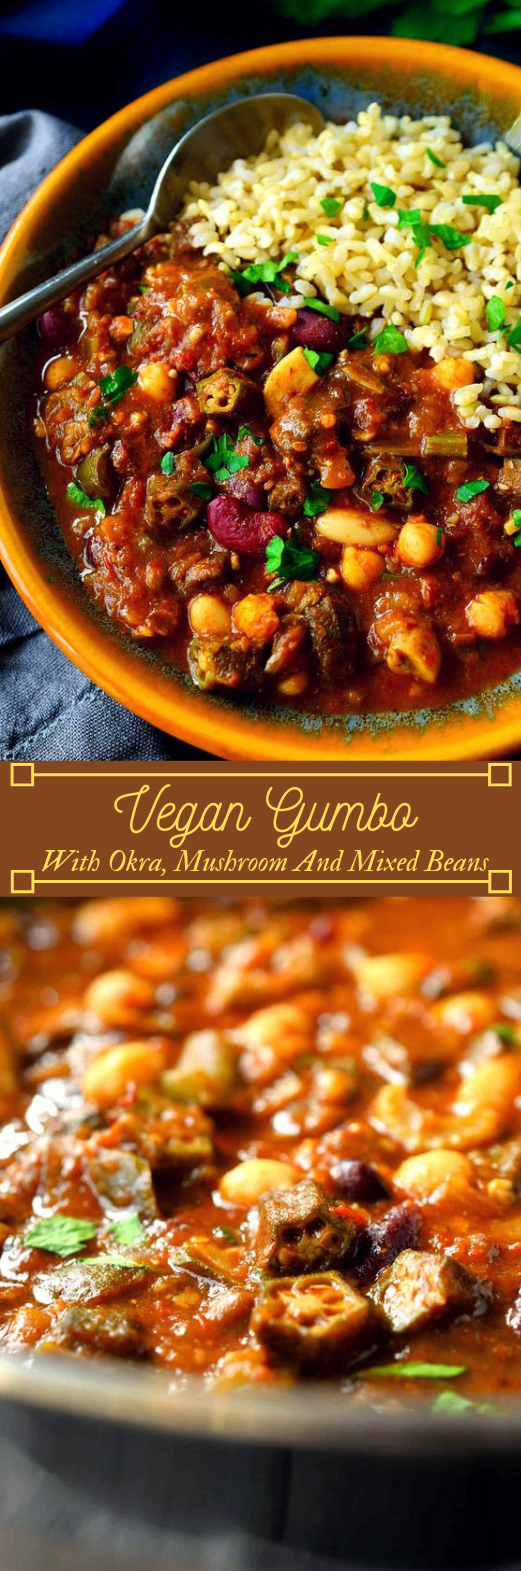 Vegan Gumbo #vegan #vegetarian #vegetable #easy #breakfast